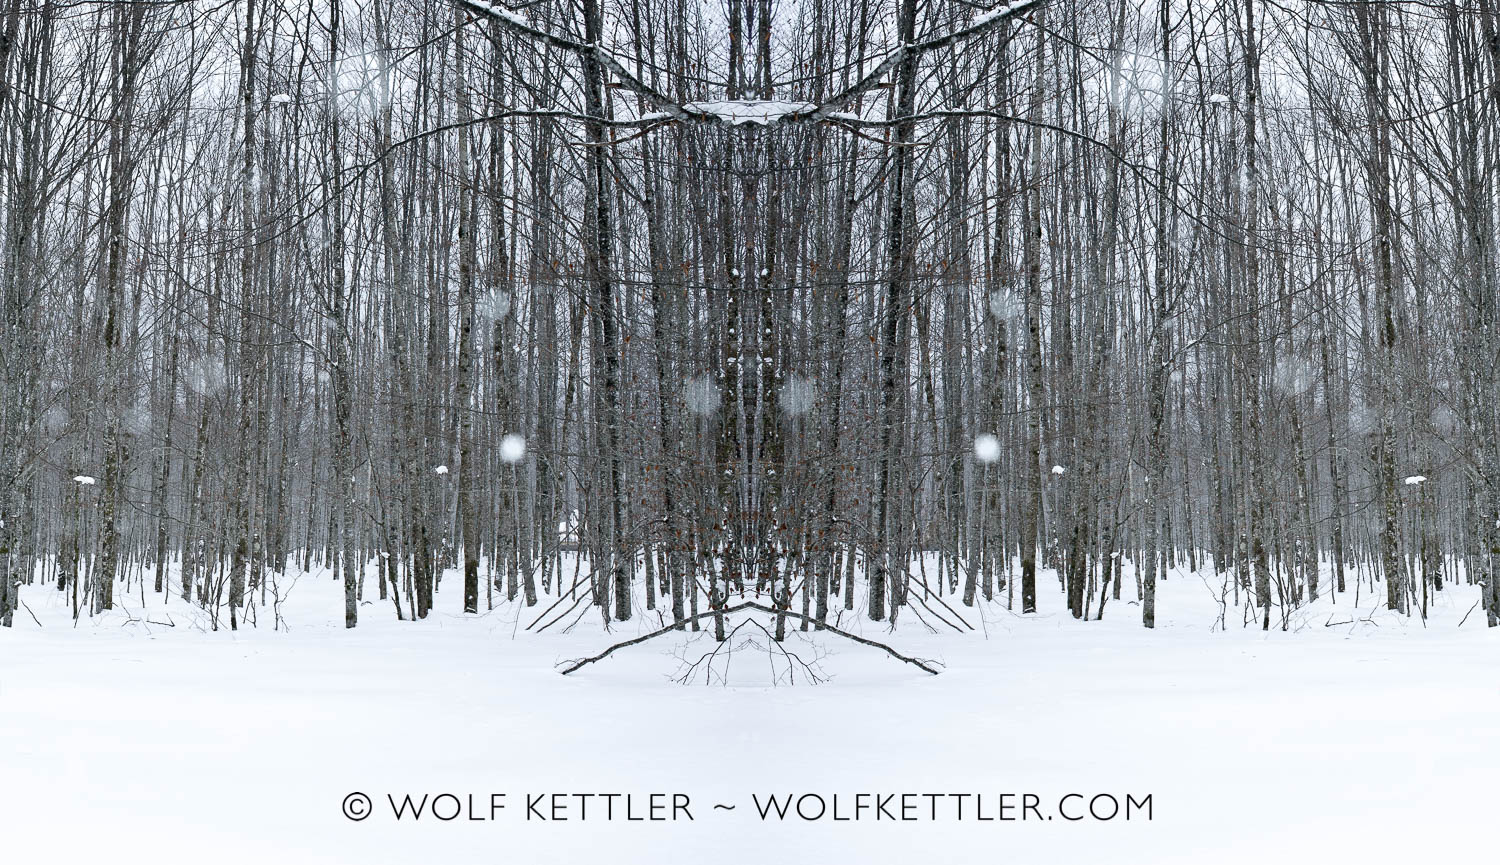 Winter Forest (2012 - 2018)